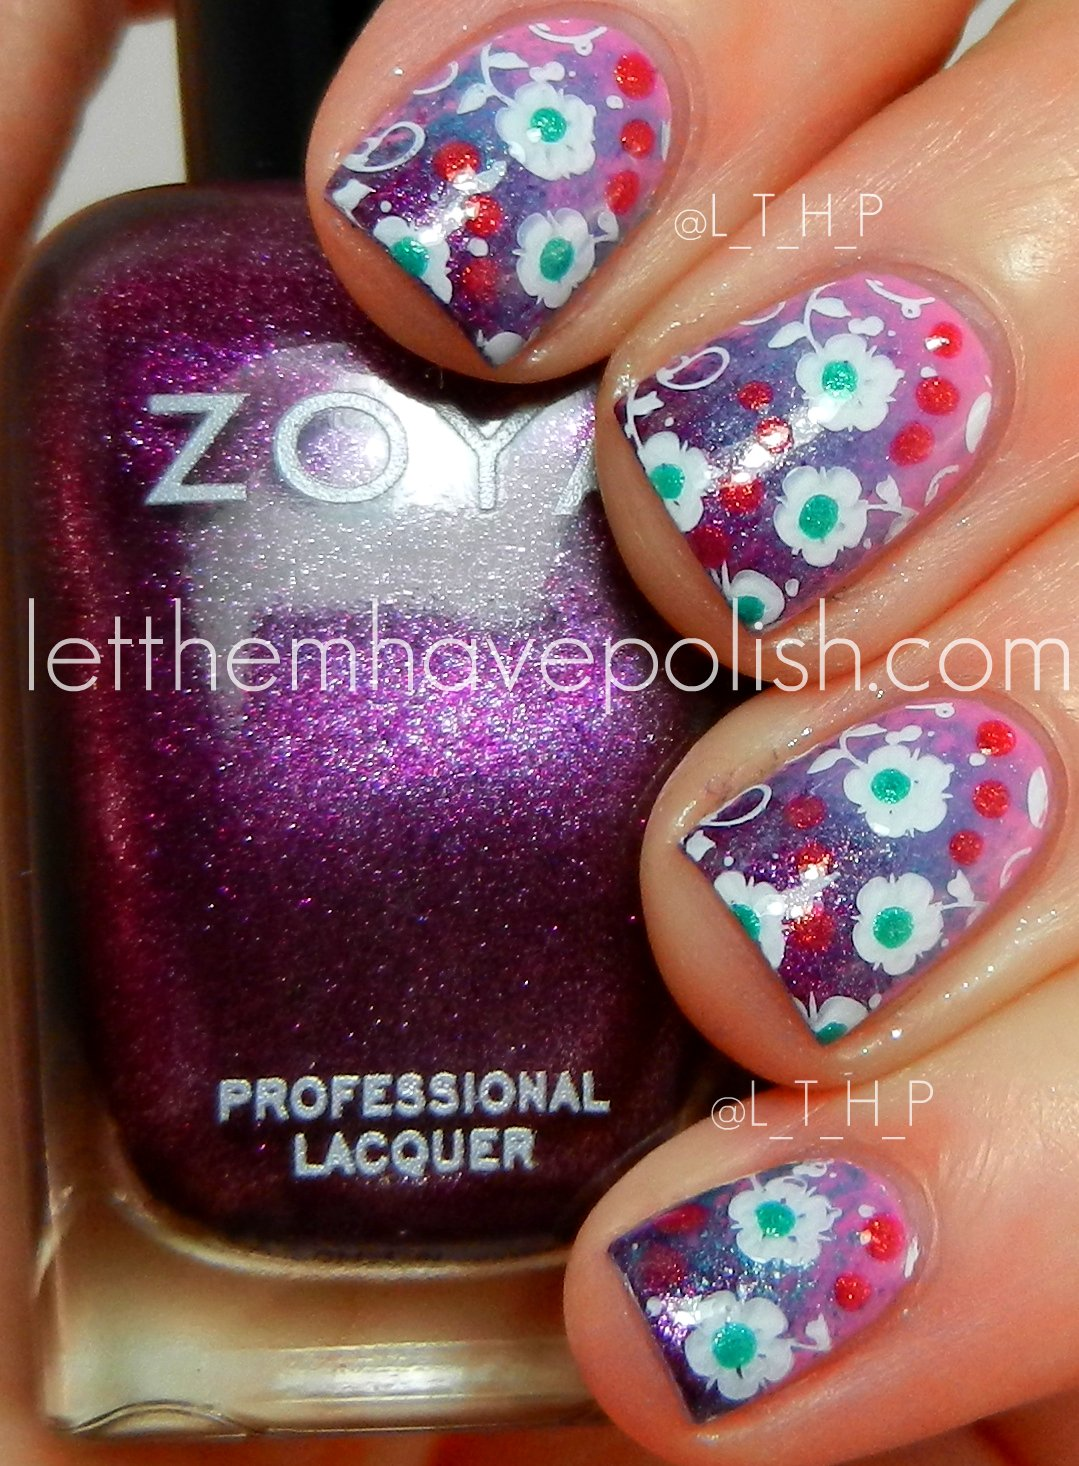 Let Them Have Polish!: Pink Wednesday!! Zoya Shelby Summer